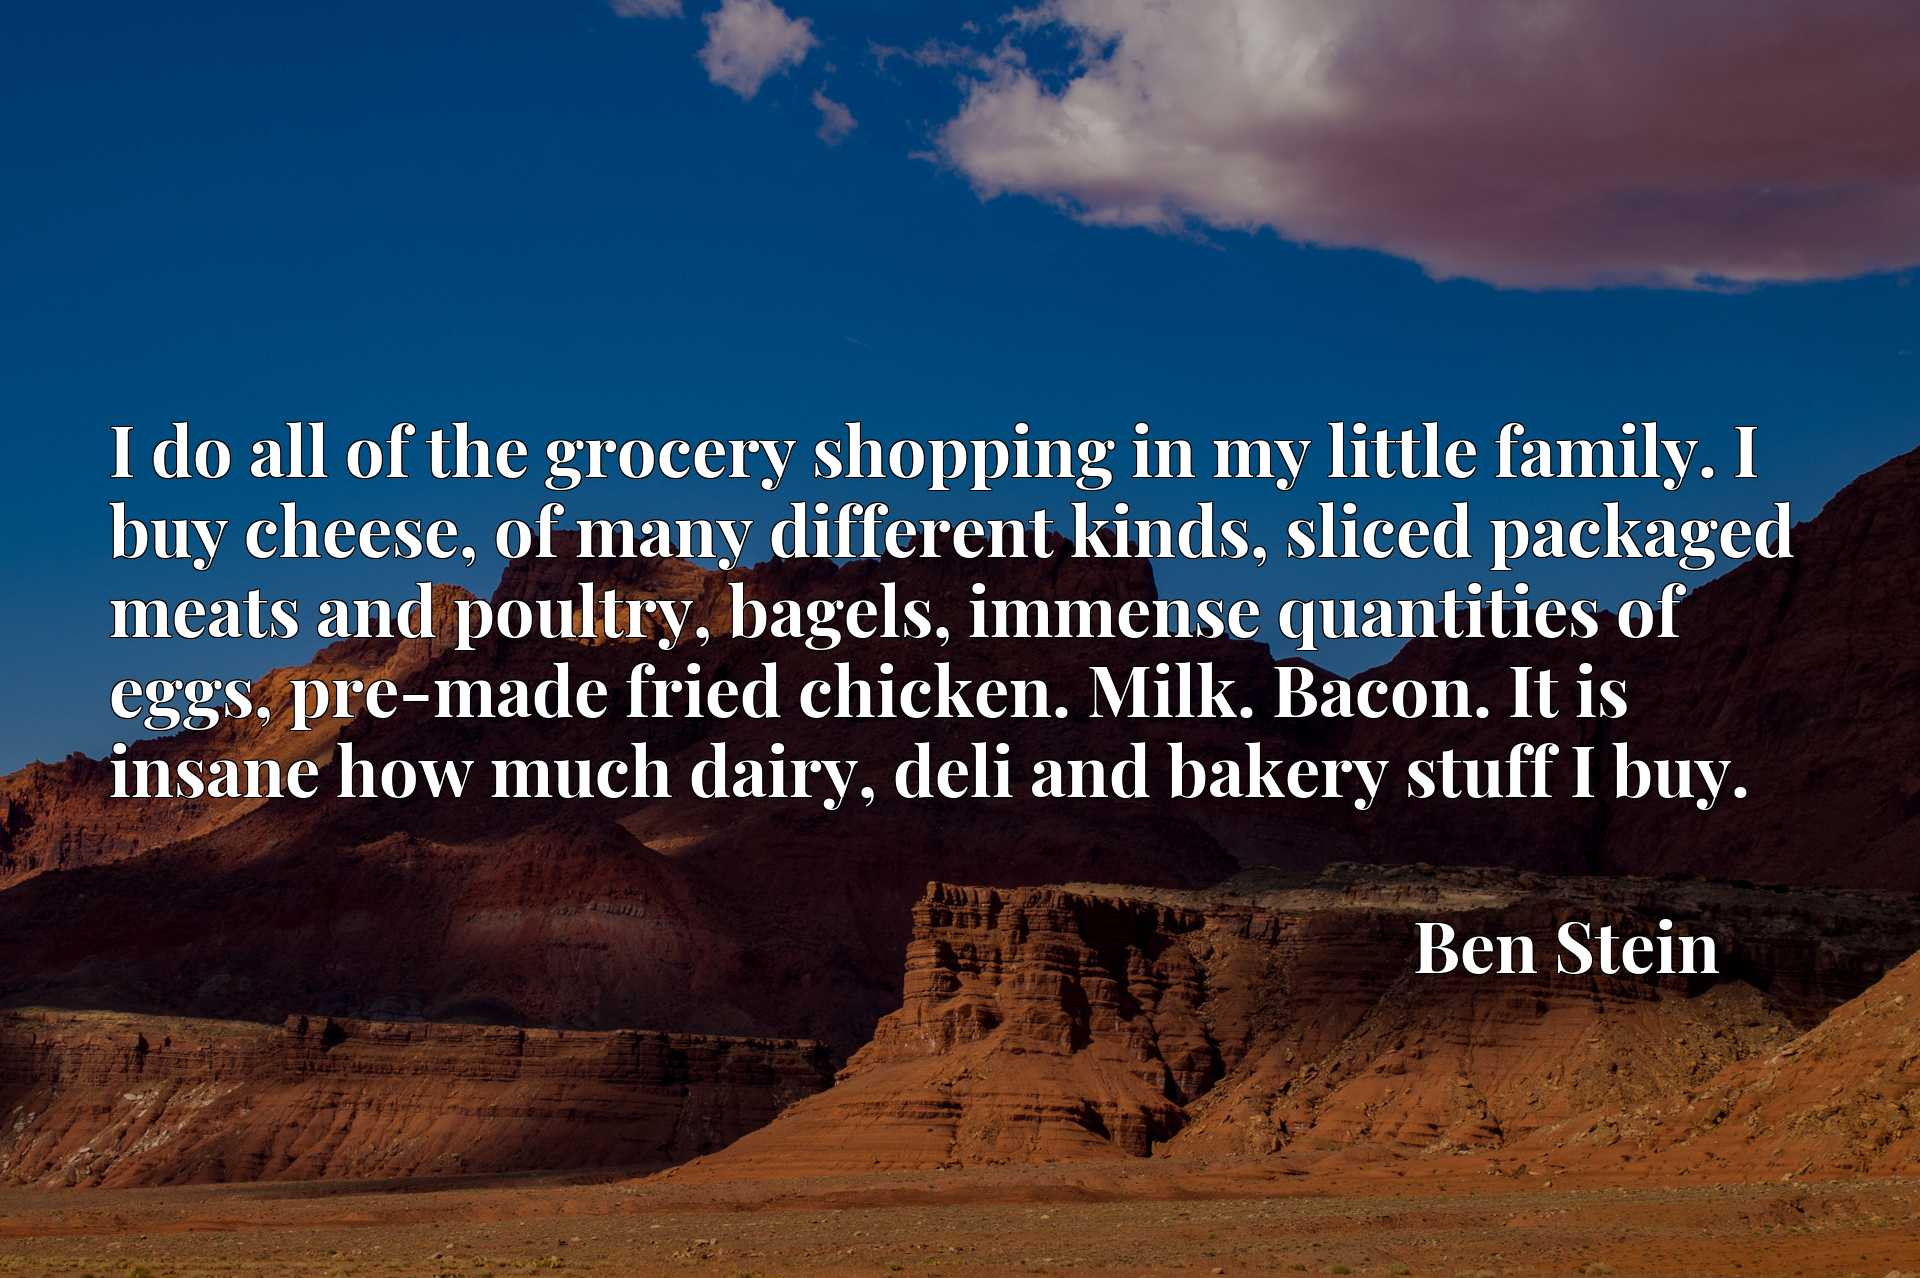 I do all of the grocery shopping in my little family. I buy cheese, of many different kinds, sliced packaged meats and poultry, bagels, immense quantities of eggs, pre-made fried chicken. Milk. Bacon. It is insane how much dairy, deli and bakery stuff I buy.